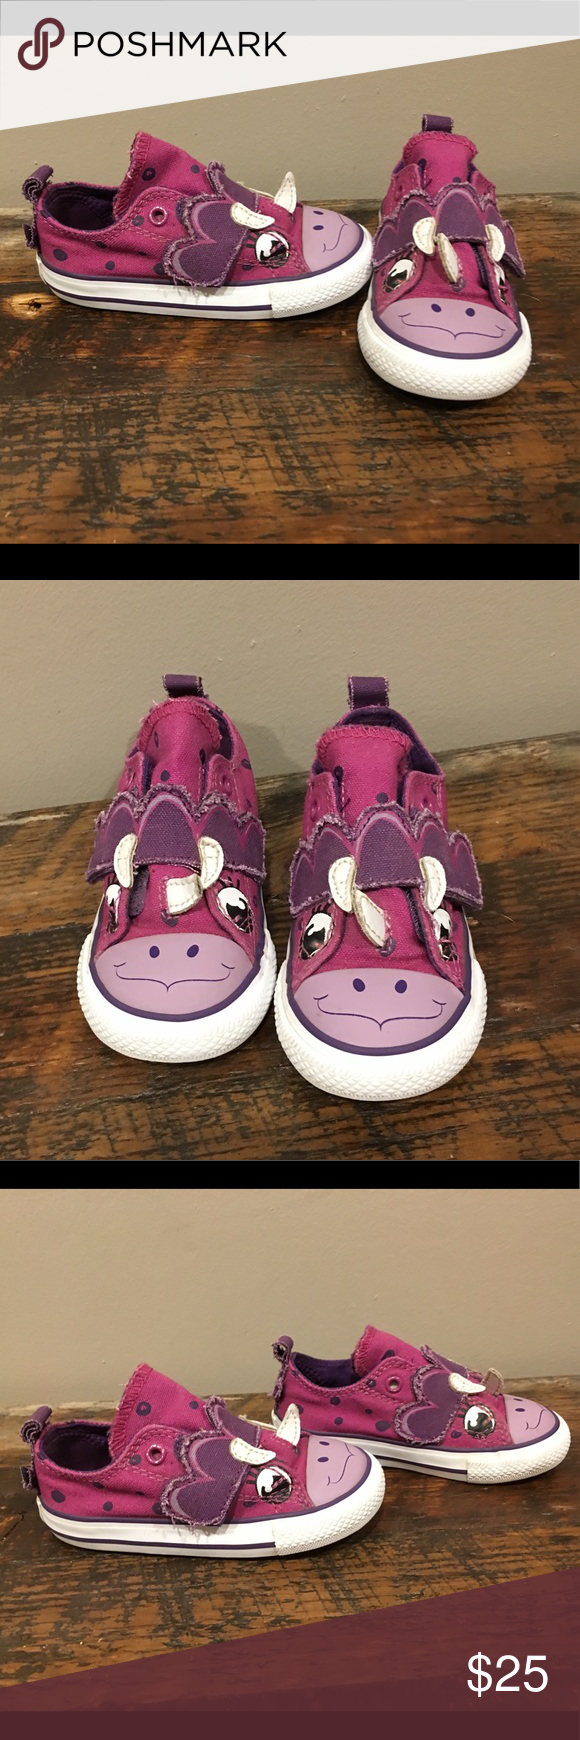 Converse Creatures Purple Rhino sz 7C Adorable purple rhino